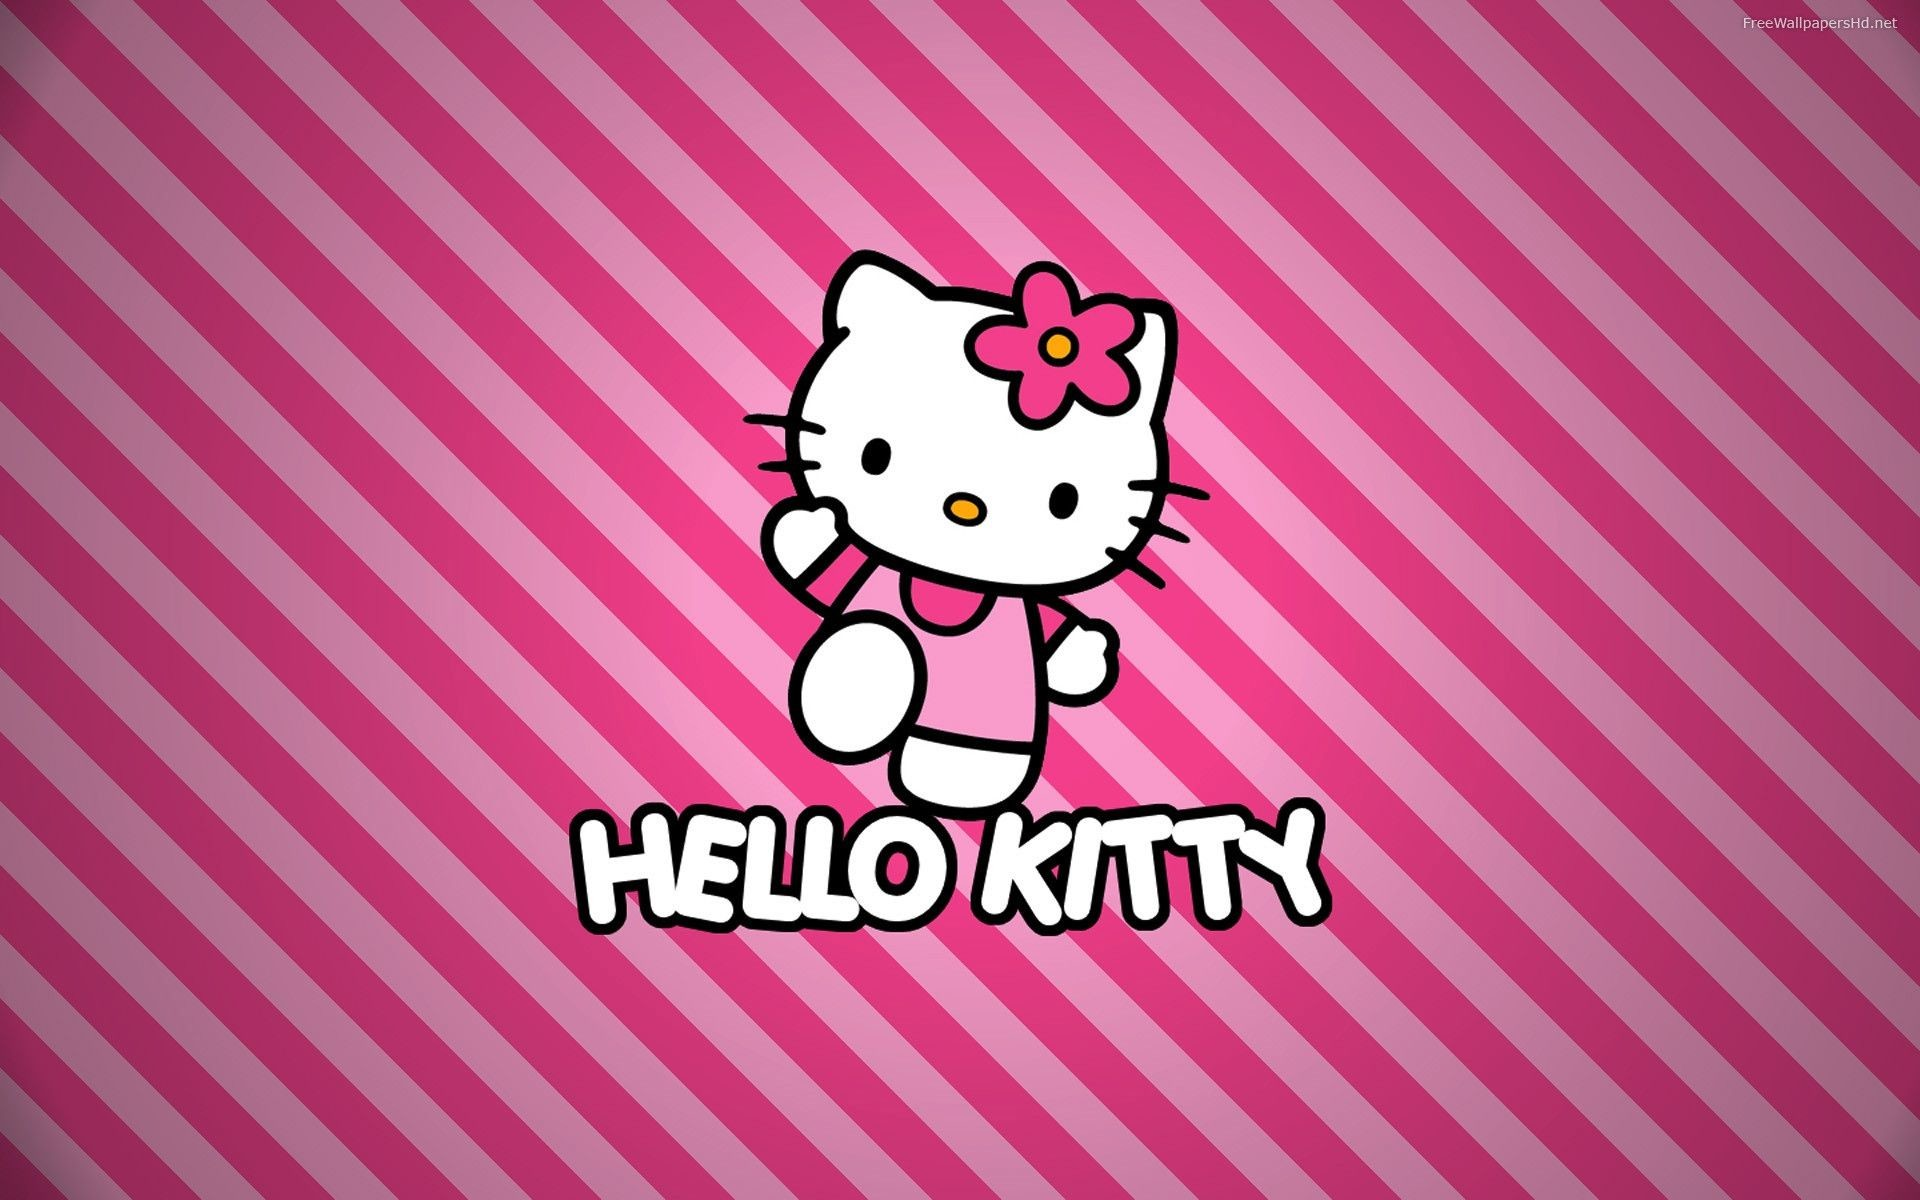 Who android wallpaper pictures of snow free hello kitty wallpaper - 1920x1200 Pink Bubbles Wallpapers Wallpaper 1920 1080 Pinkish Wallpapers 29 Wallpapers Adorable Wallpapers Hello Kitty Wallpaper Hdpink